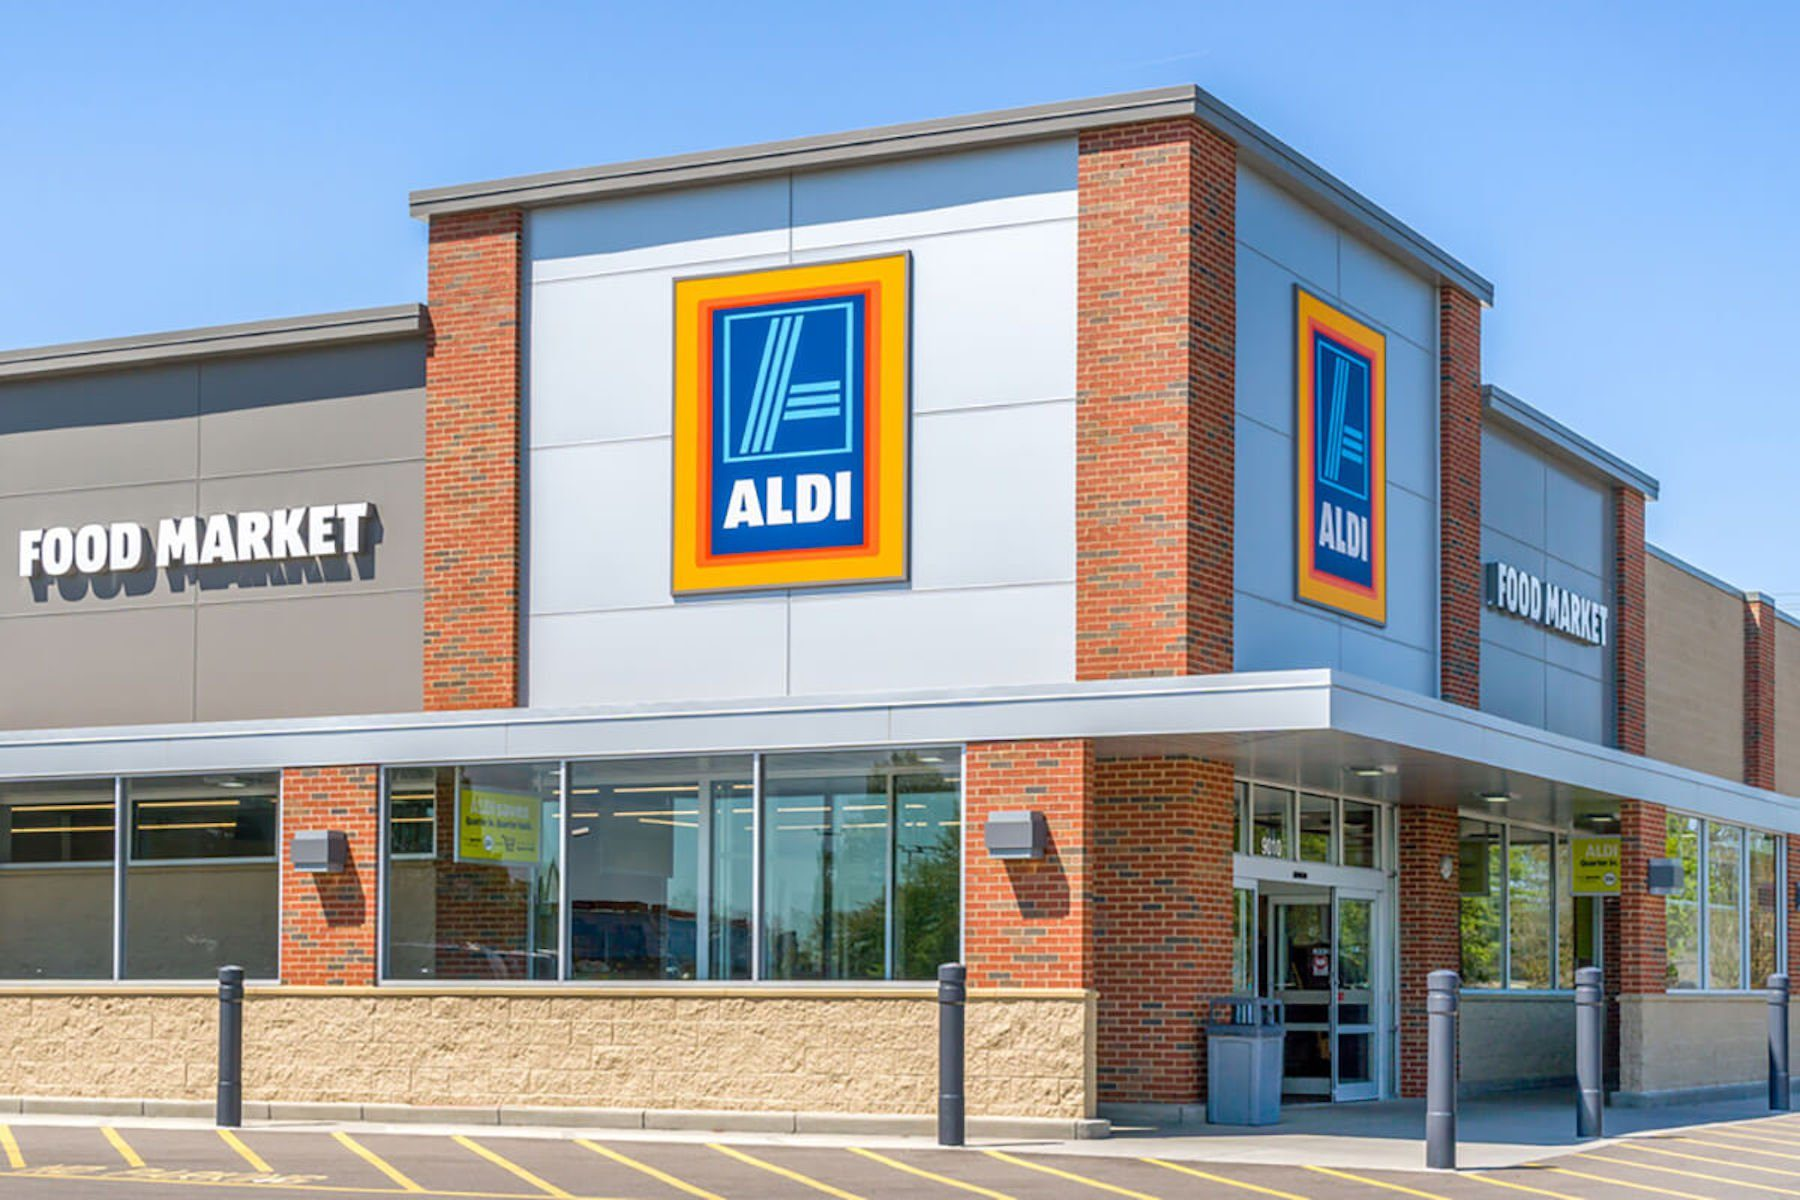 aldi grocery store external